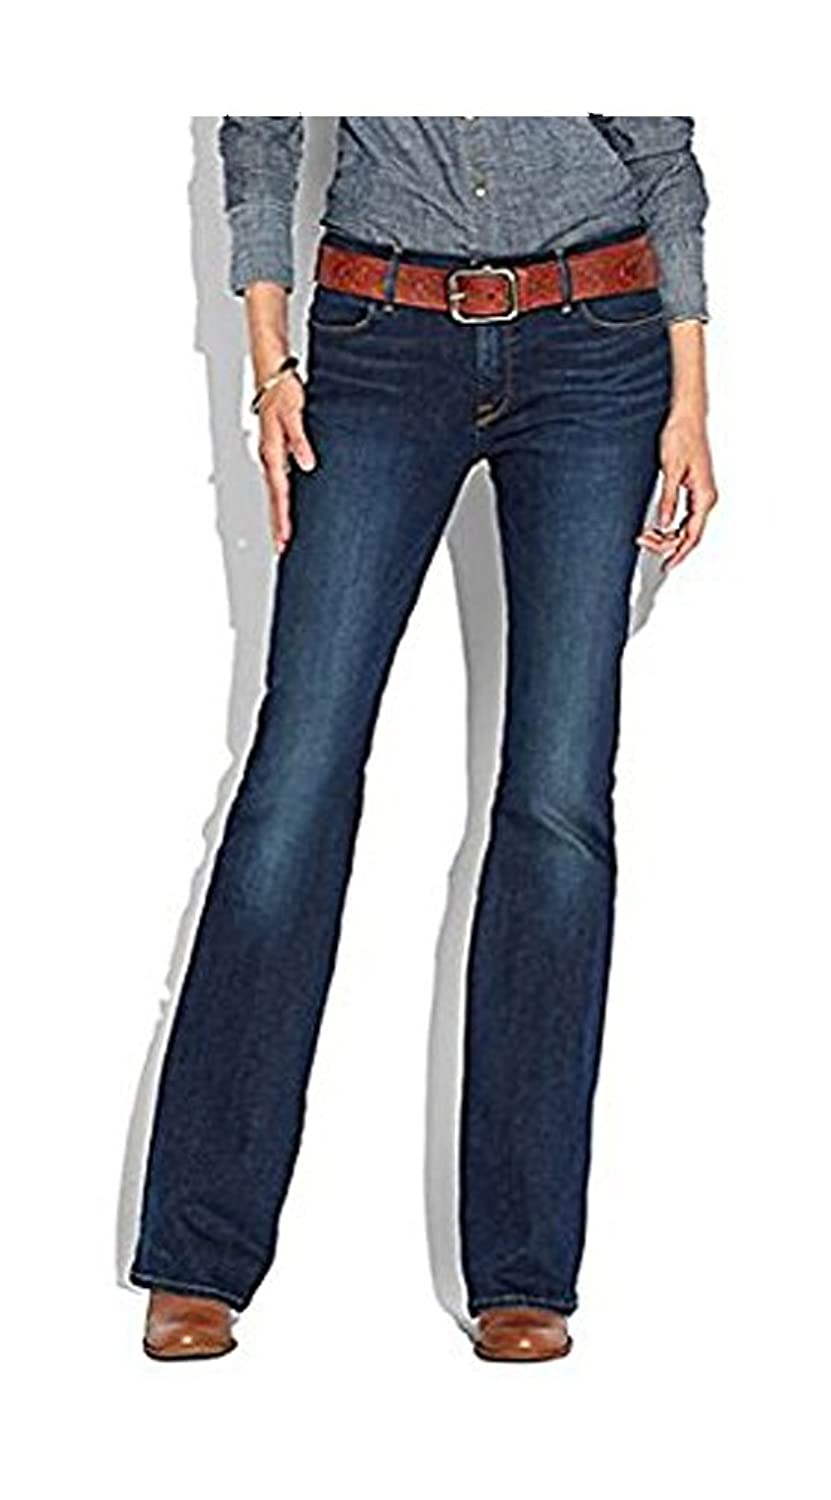 Lucky Brand Charlotte Kick Flare Jean High-Rise Women's Jeans, Dark Wash, Size 29